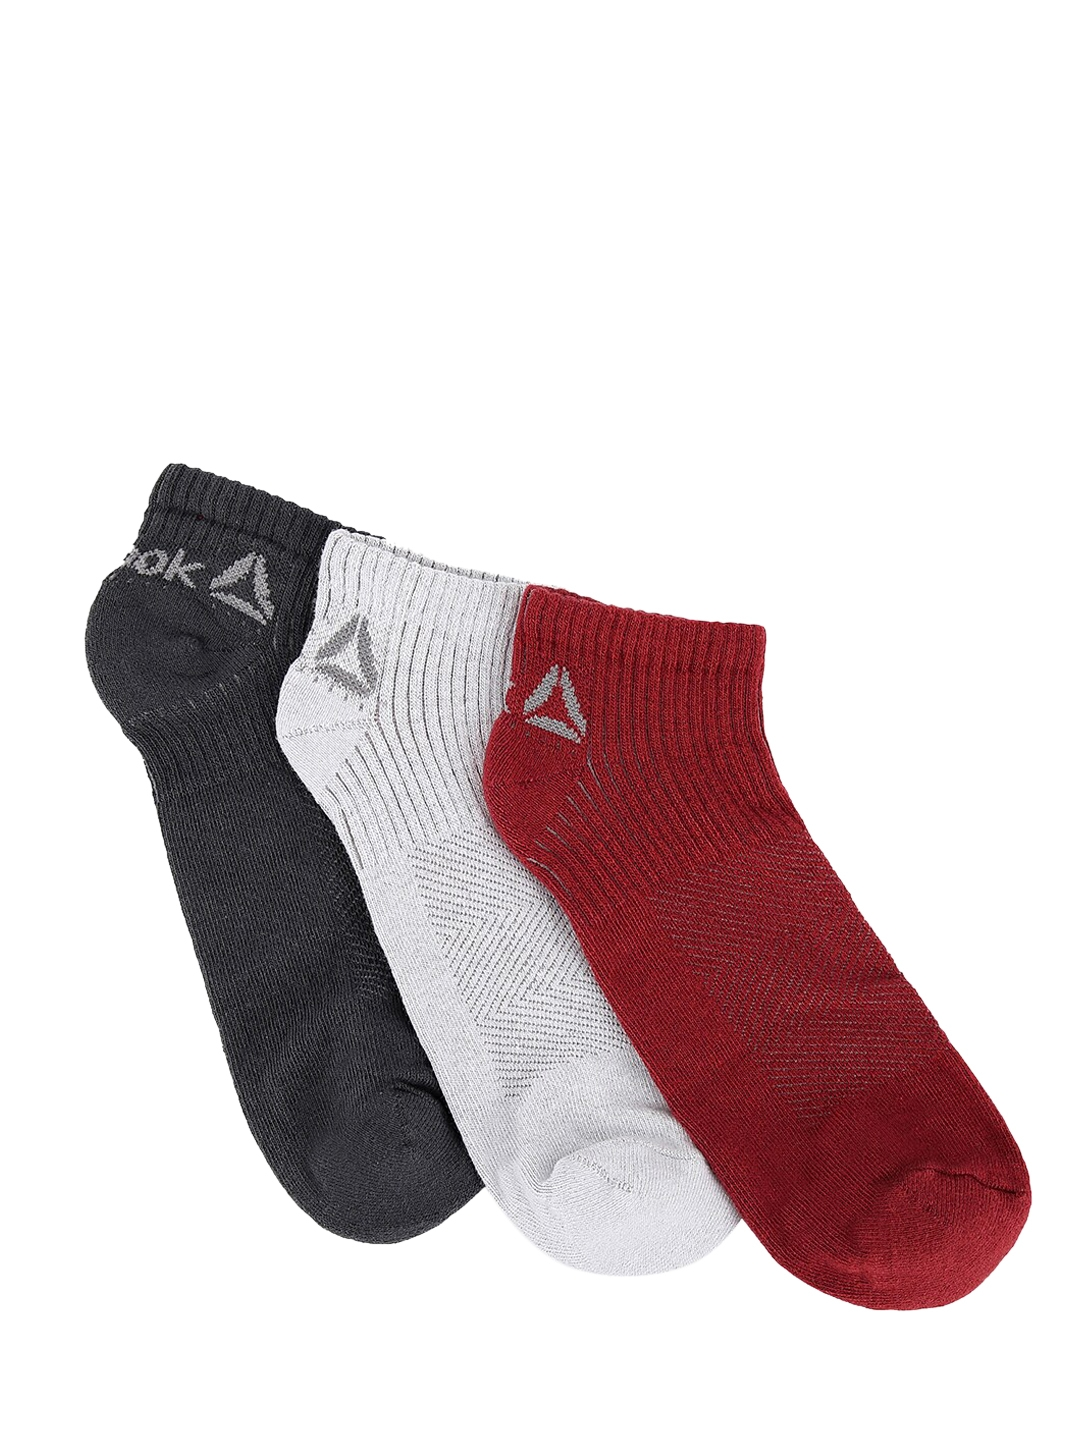 Reebok Men Pack Of 3 Assorted Ankle Length Socks